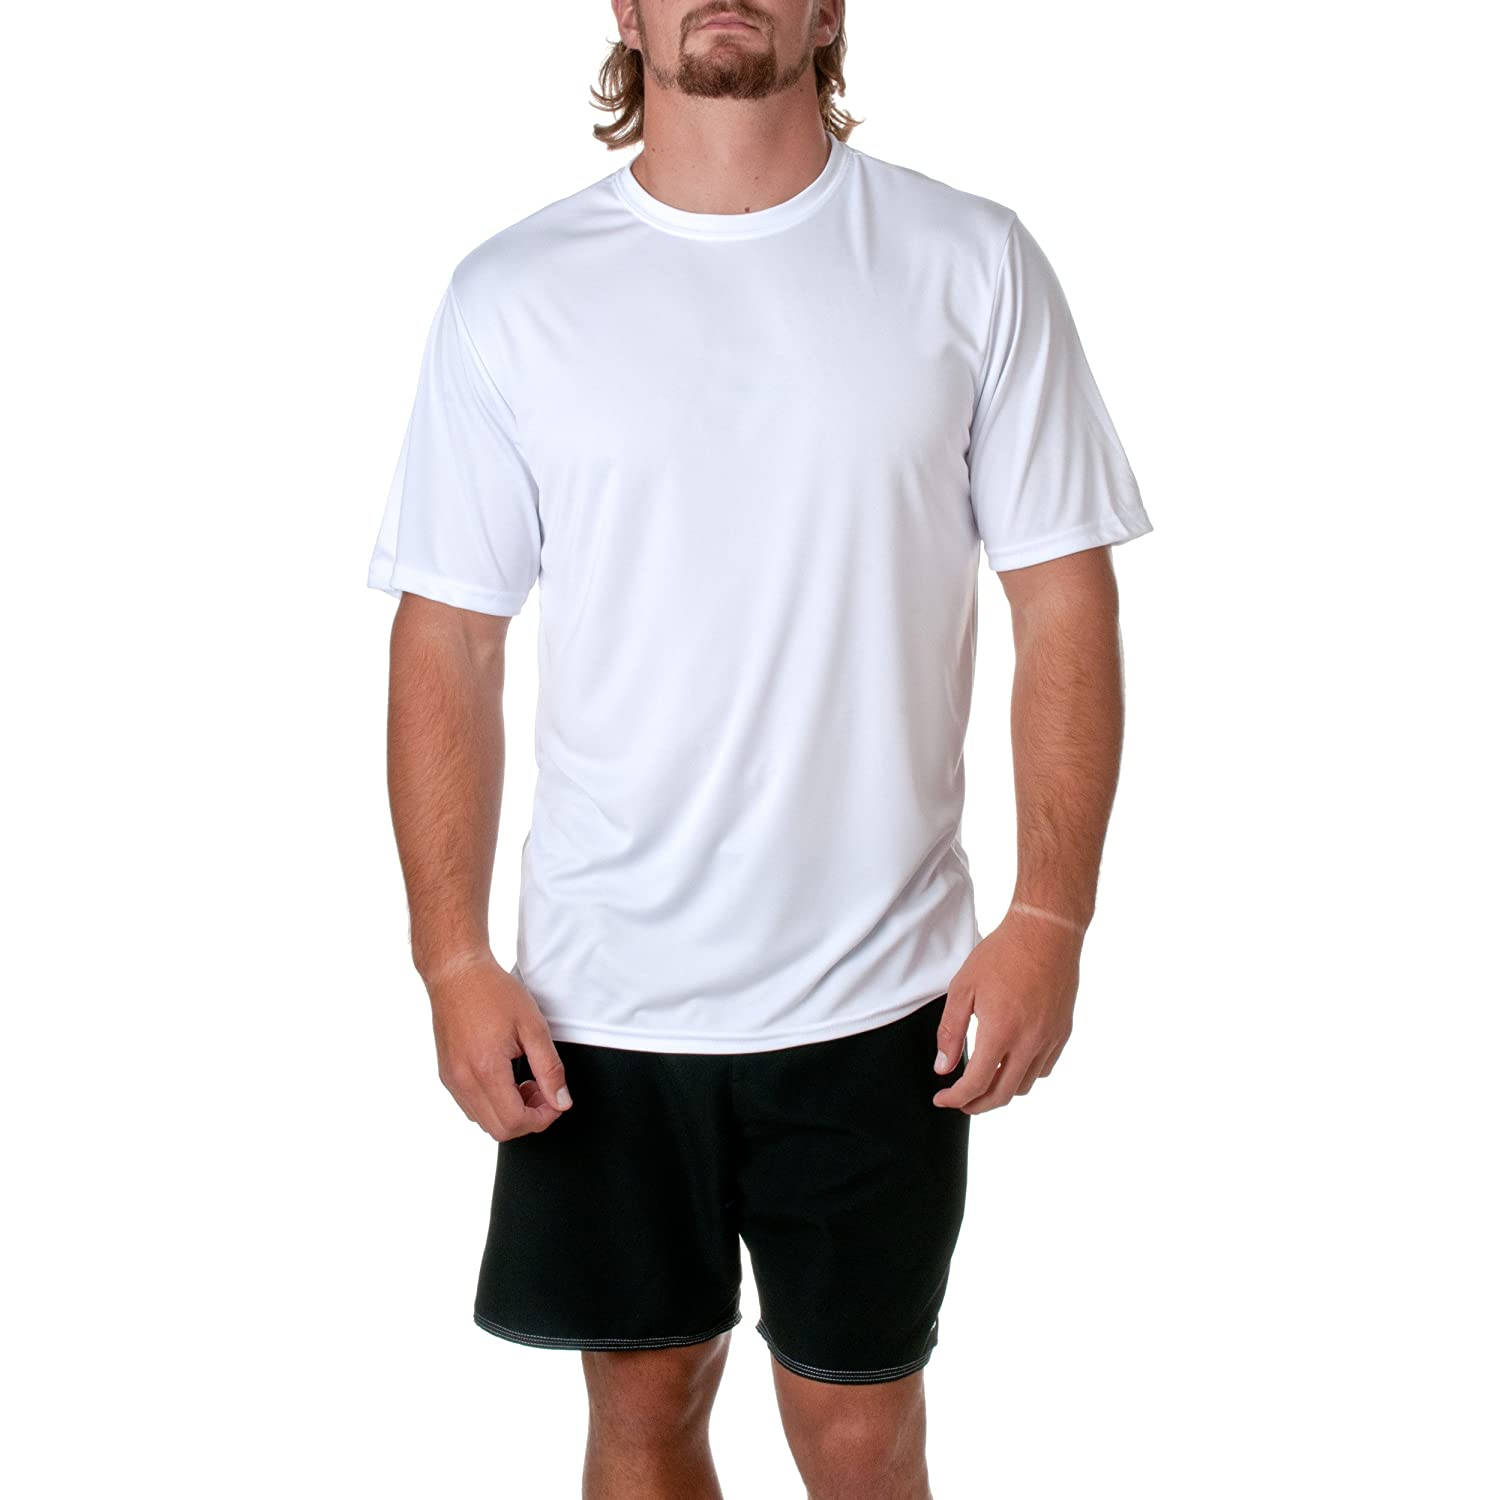 Design your own t-shirt international shipping - Amazon Com A4 Men S Cooling Performance Crew Short Sleeve Tee Sports Outdoors